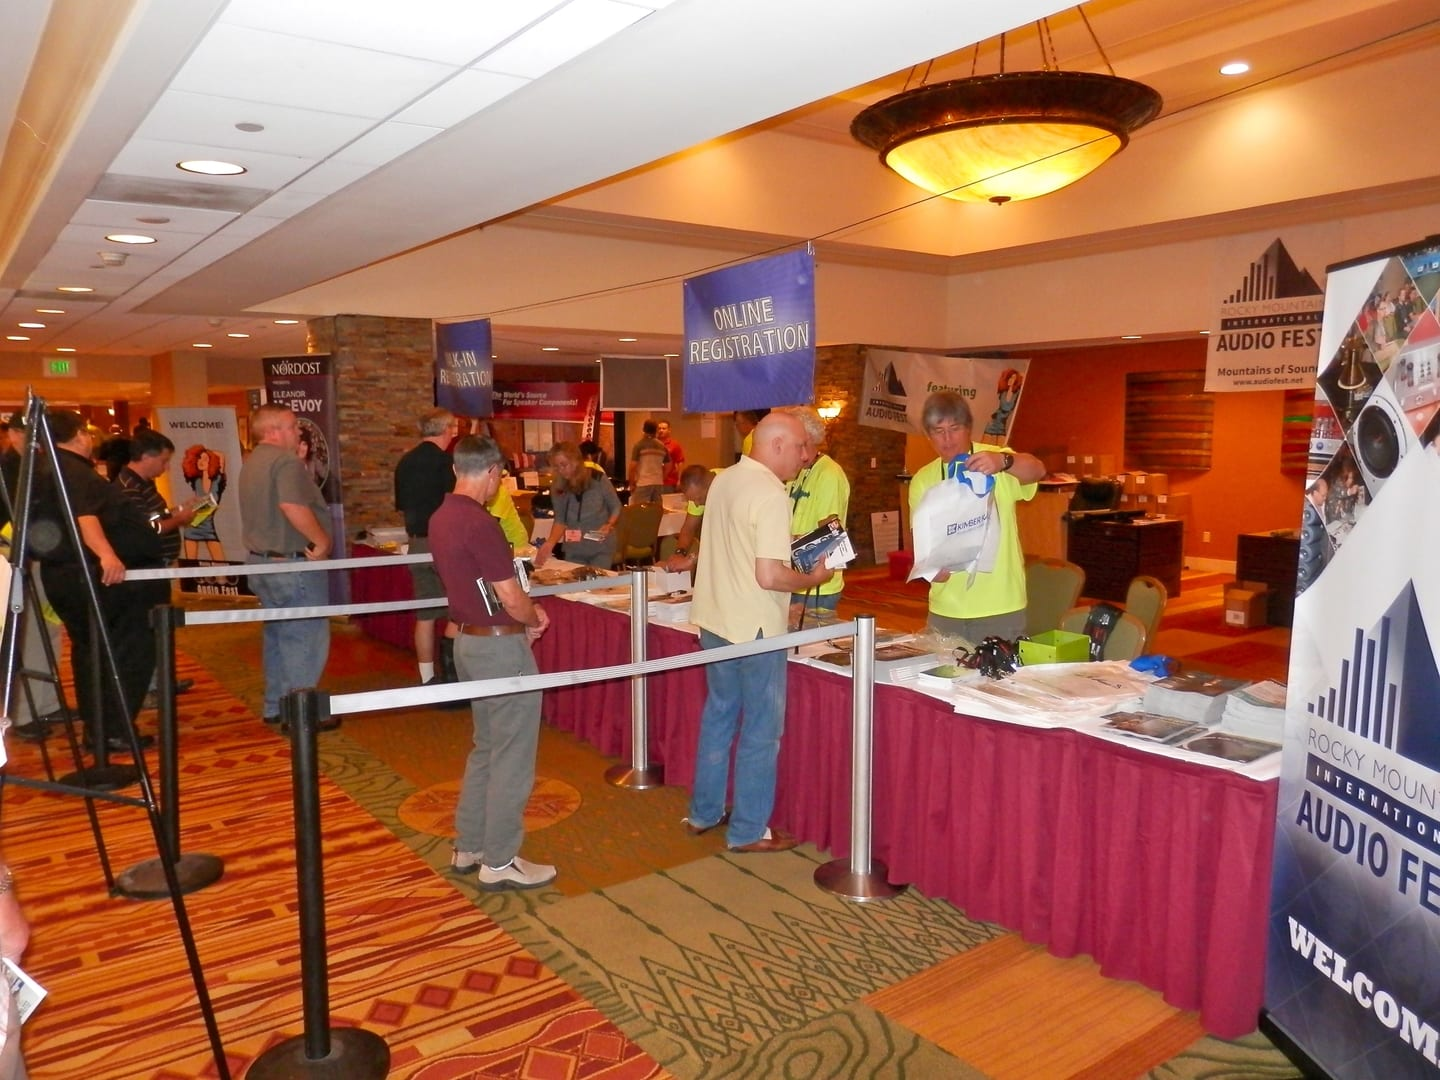 33 Two-Channel Audio Discoveries from RMAF 2015